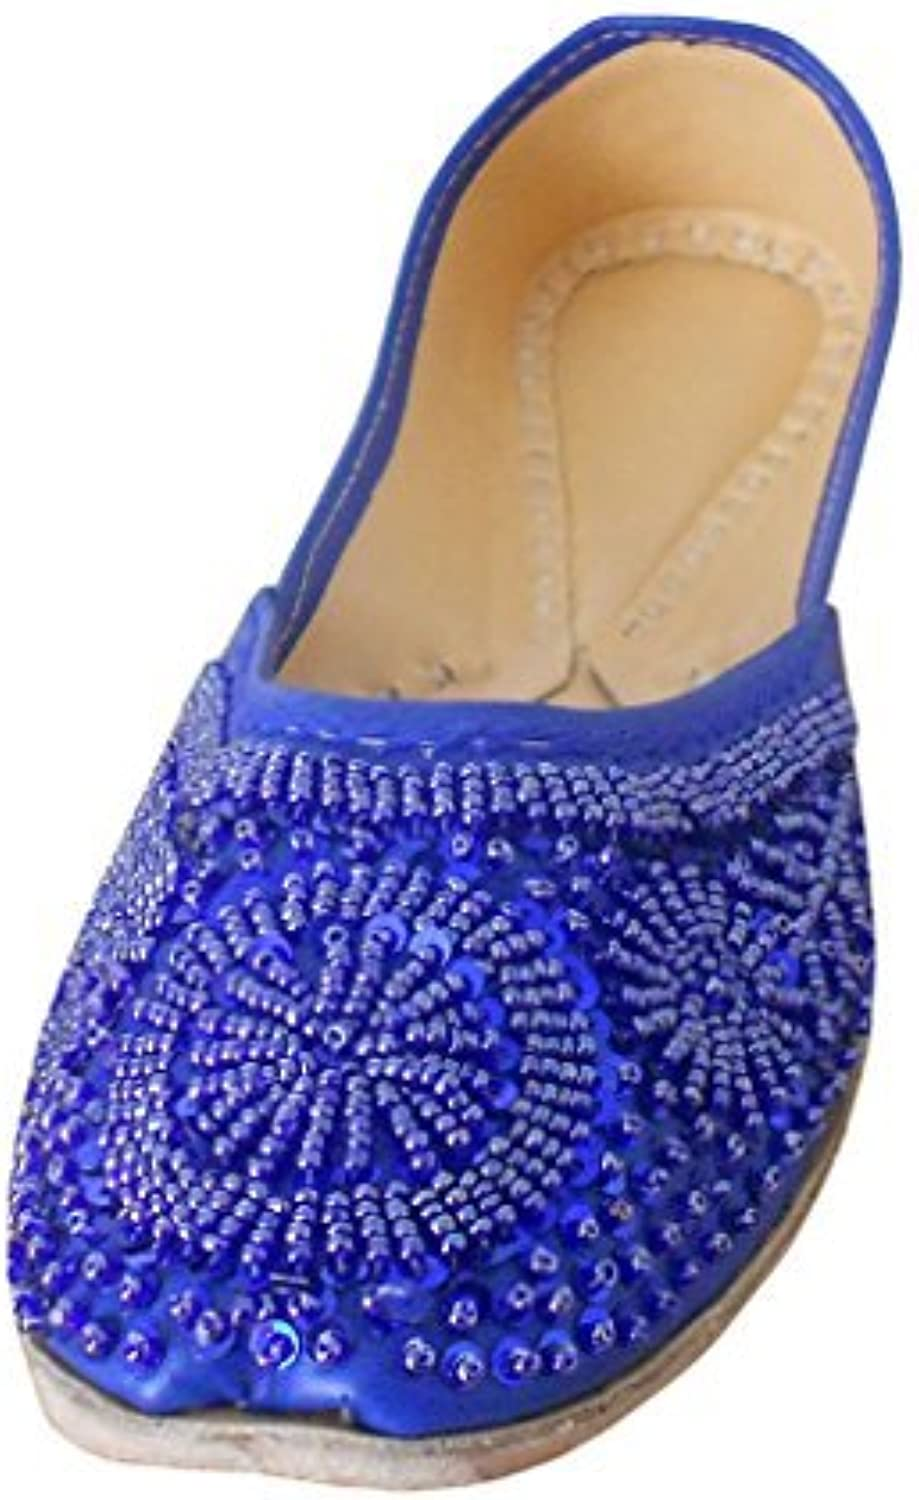 Kalra Creations Women's Mojari Traditional Indian shoes Faux Leather with Sequence Work Ethnic Flats